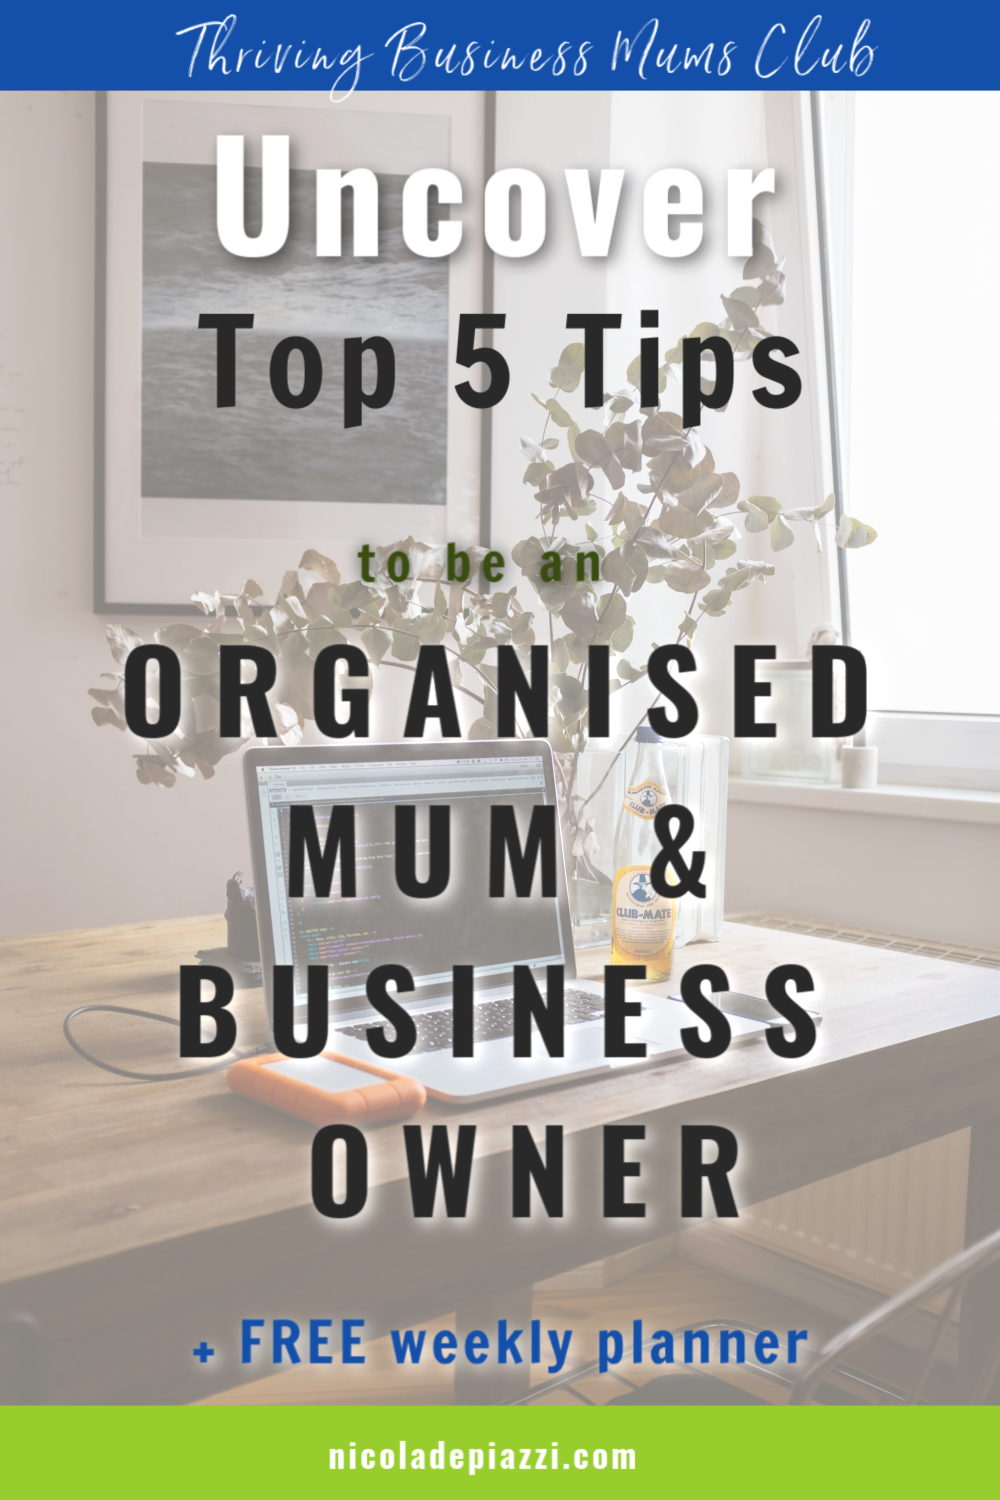 be an organised mum & business owner